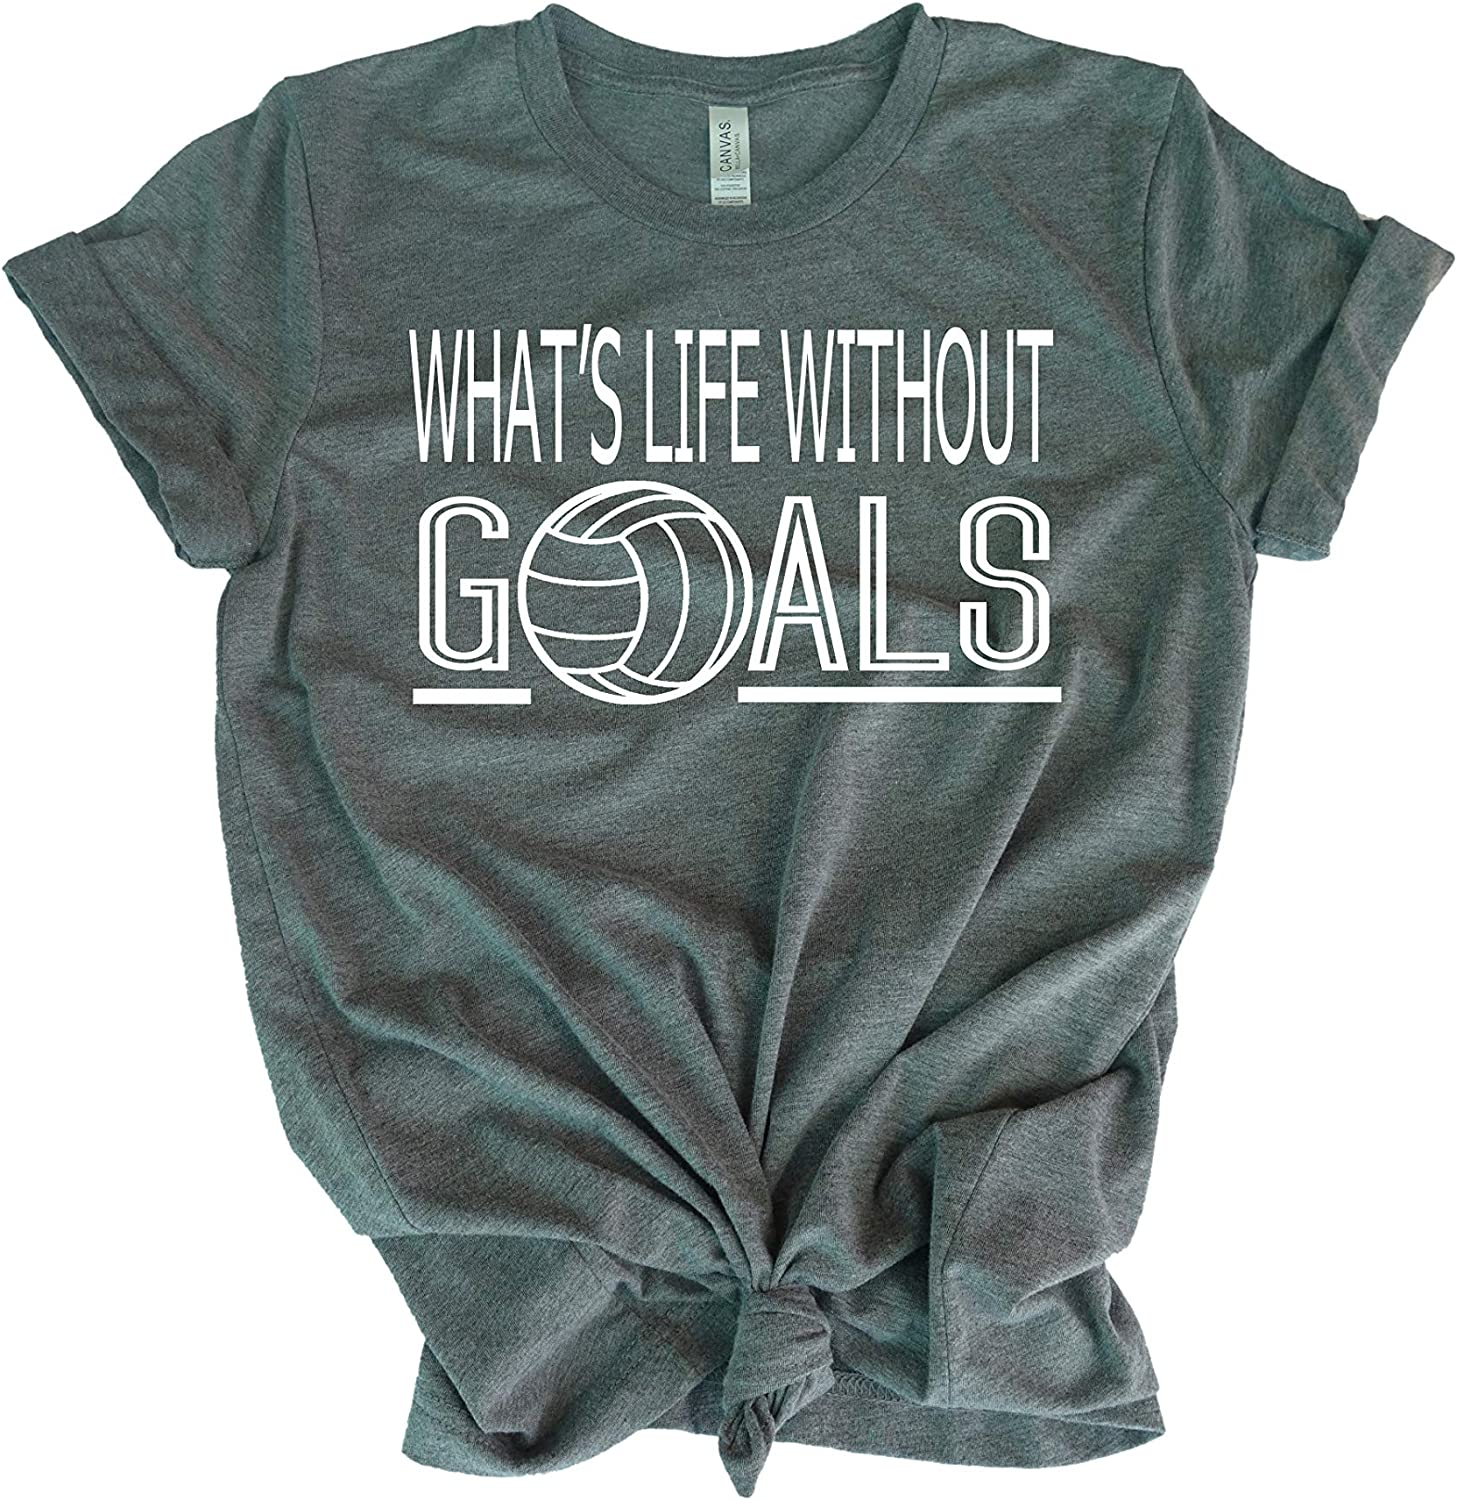 What's Life Without Goals - Volleyball